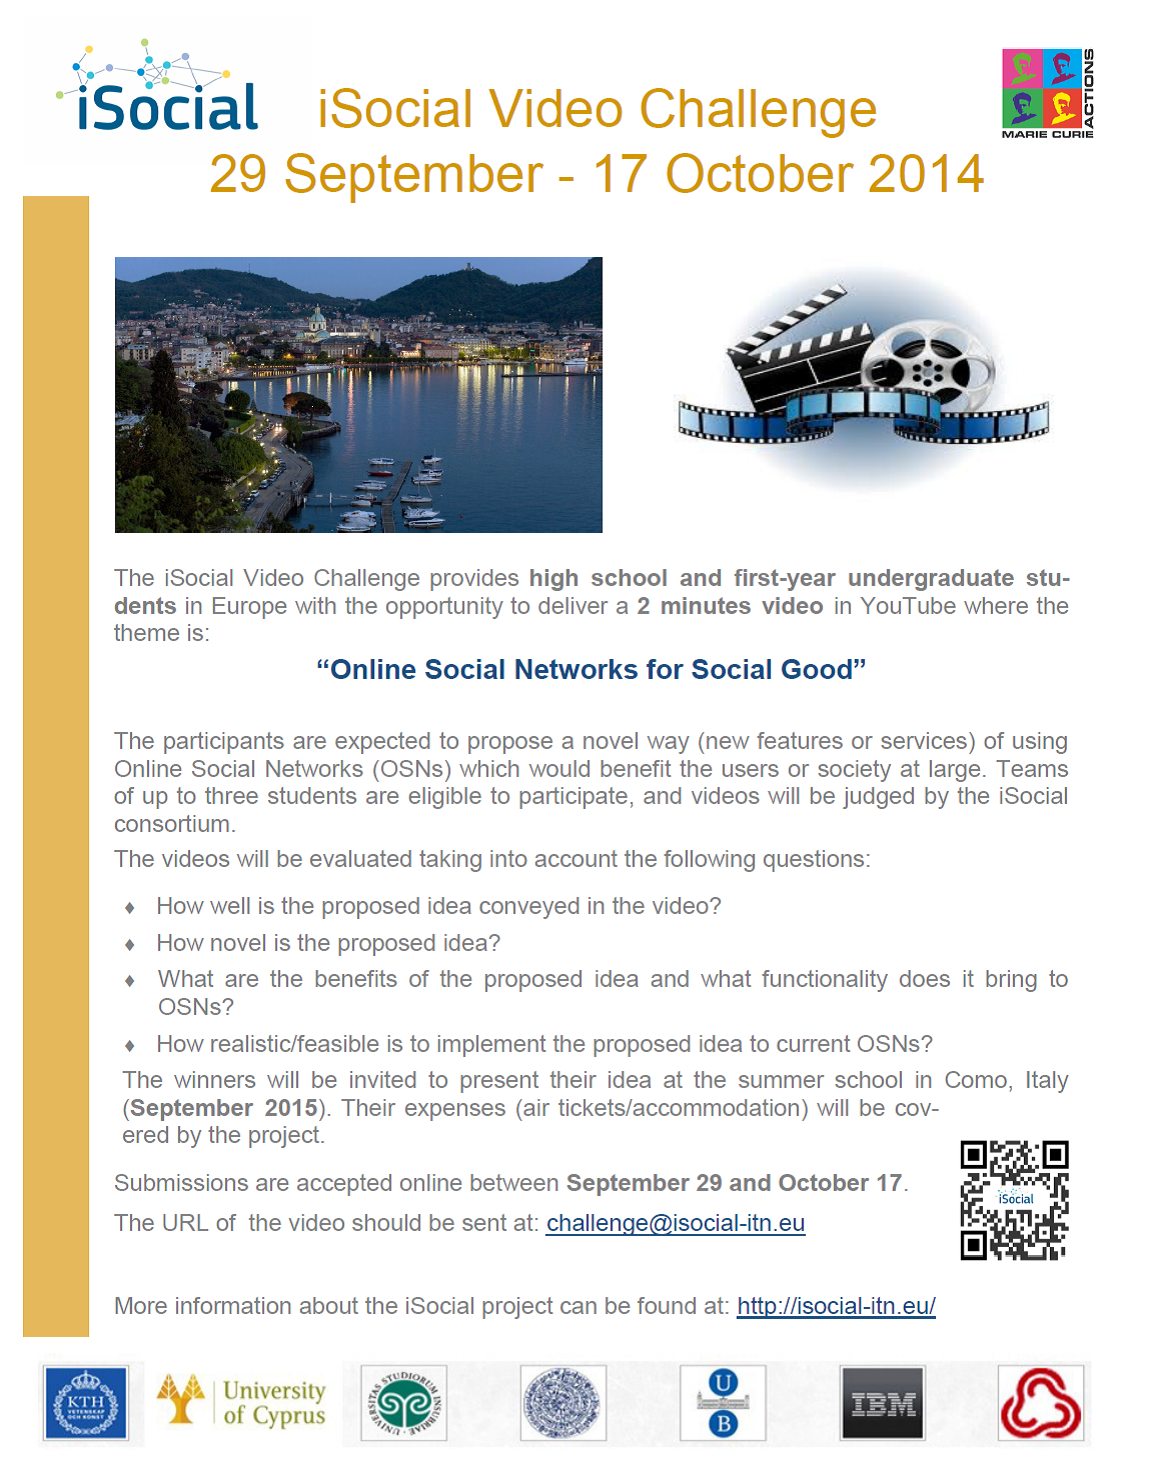 iSocial Video Challenge, 29 September - 17 October 2014